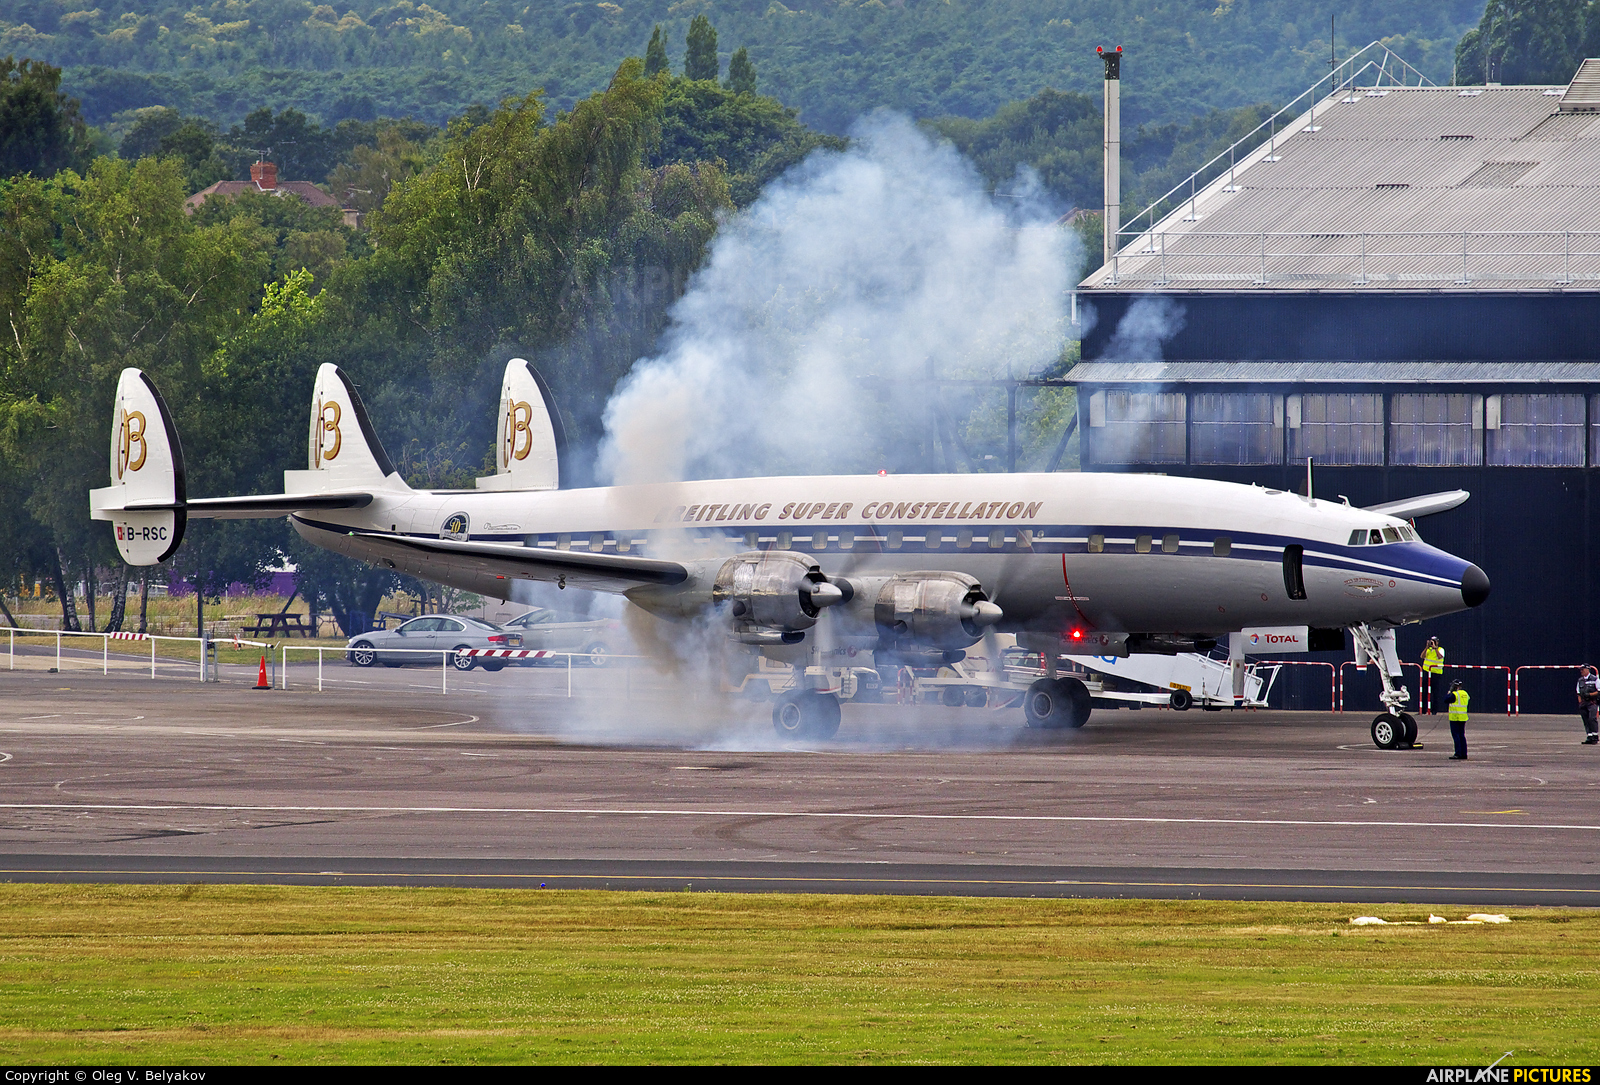 Super Constellation Flyers HB-RSC aircraft at Farnborough